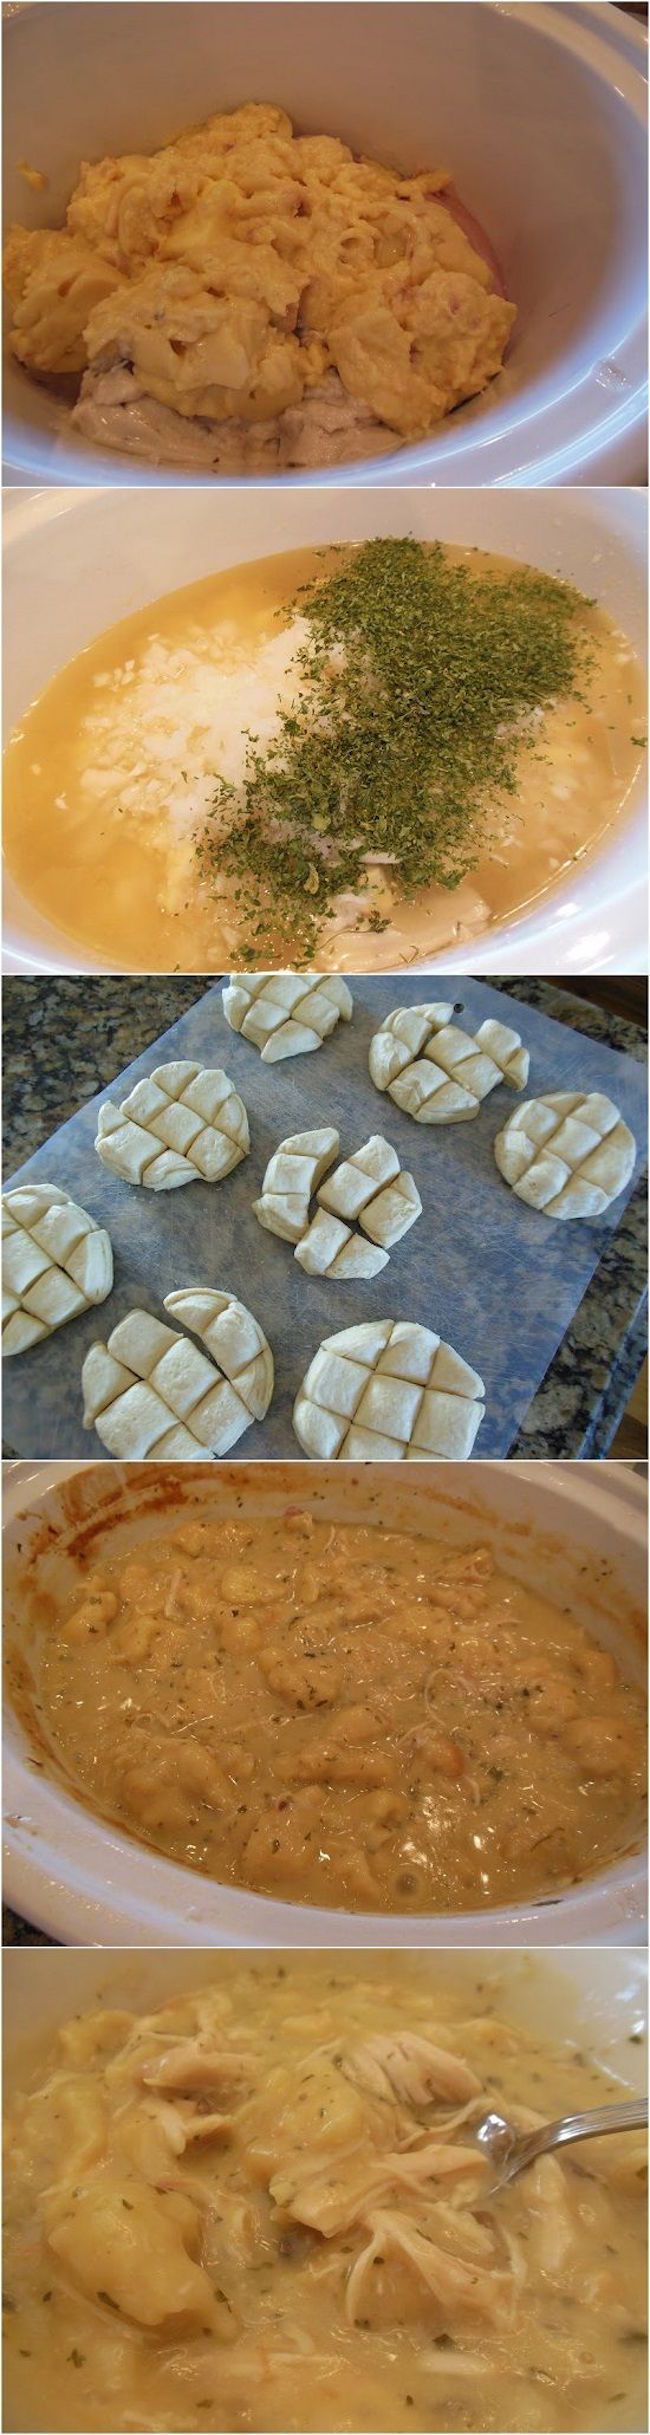 Crockpot Chicken & Dumplings -- Ingredients: 2 chicken breasts - 2 Tbsp butter - 2 cans cream of chicken soup - 14.5 oz chicken broth - 2 Tbsp dried diced onion - 1 Tbsp dried parsley - 4 Grands flaky refrigerator biscuits -- Combine all ingredients except biscuits. Cover and cook on High 4-5 hrs -- After chicken is cooked, shred and return to soup -- Cut each biscuit into 9 pieces, stir into soup. Cover and cook 1hr. Stir, and serve